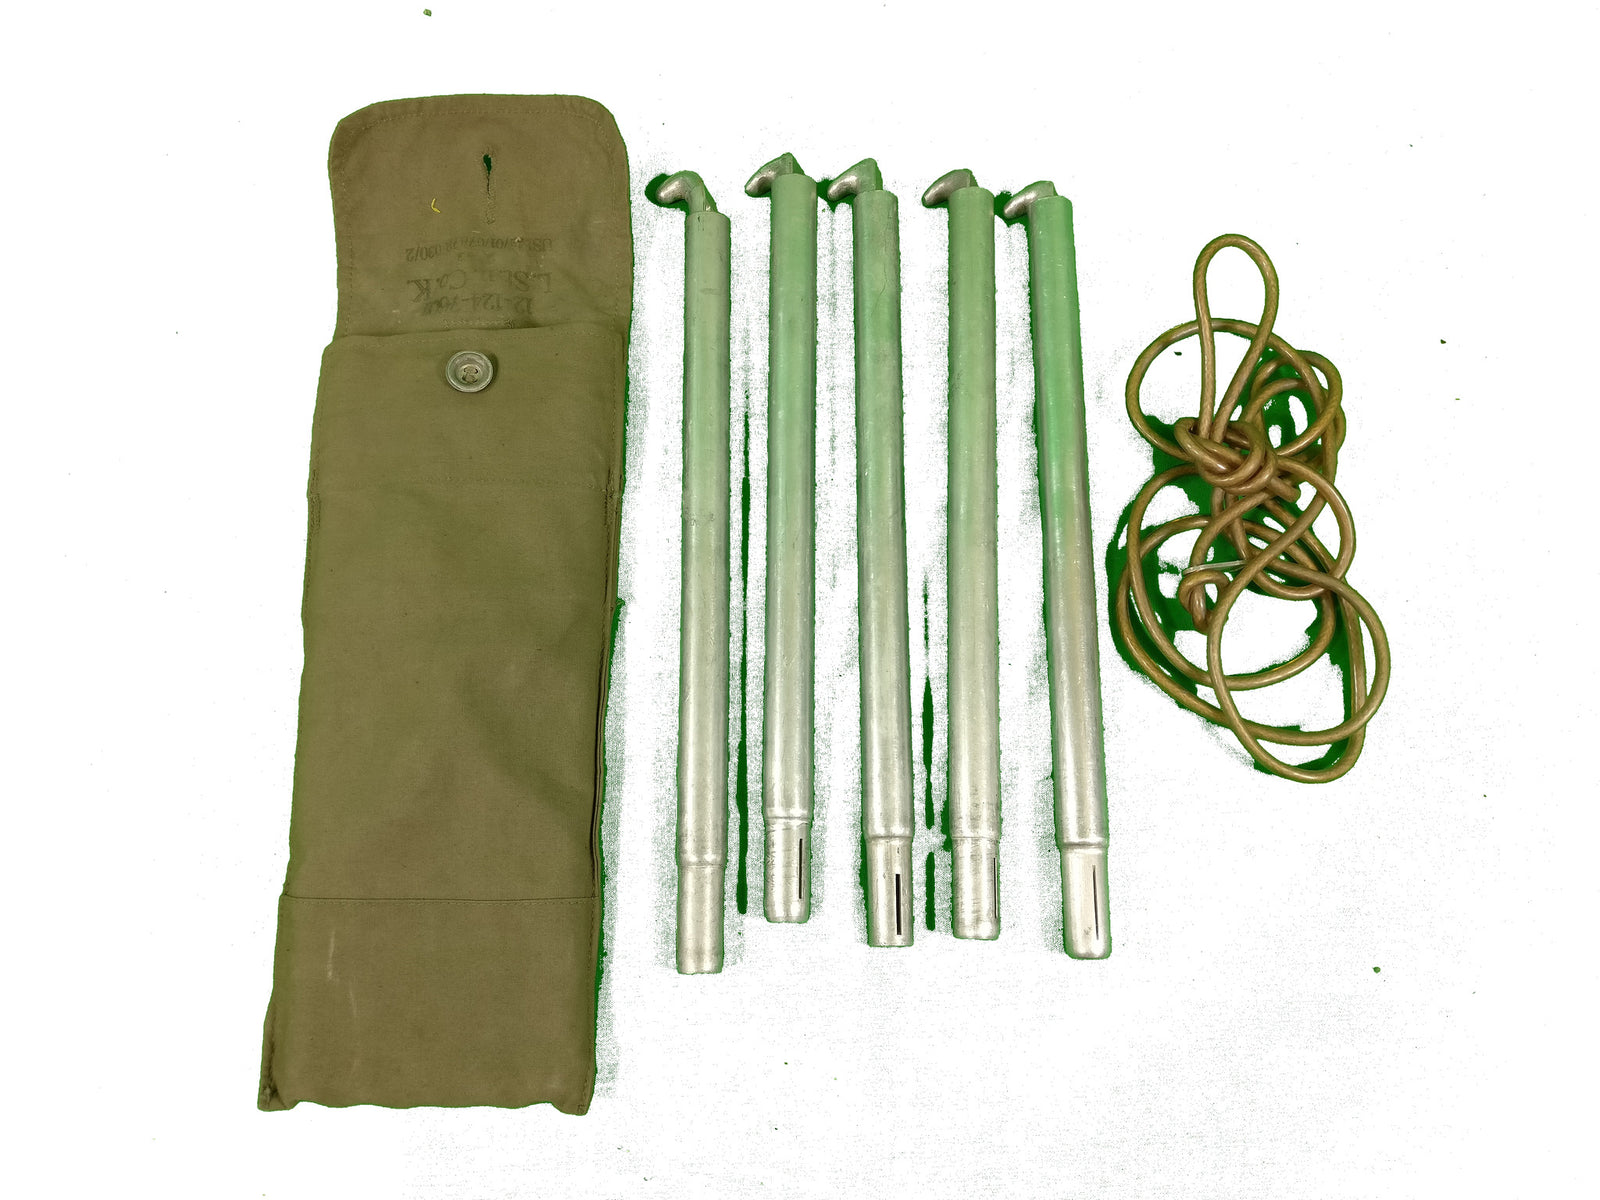 2 sets of German army surplus tent poles, pegs and bag OLIVE BAG